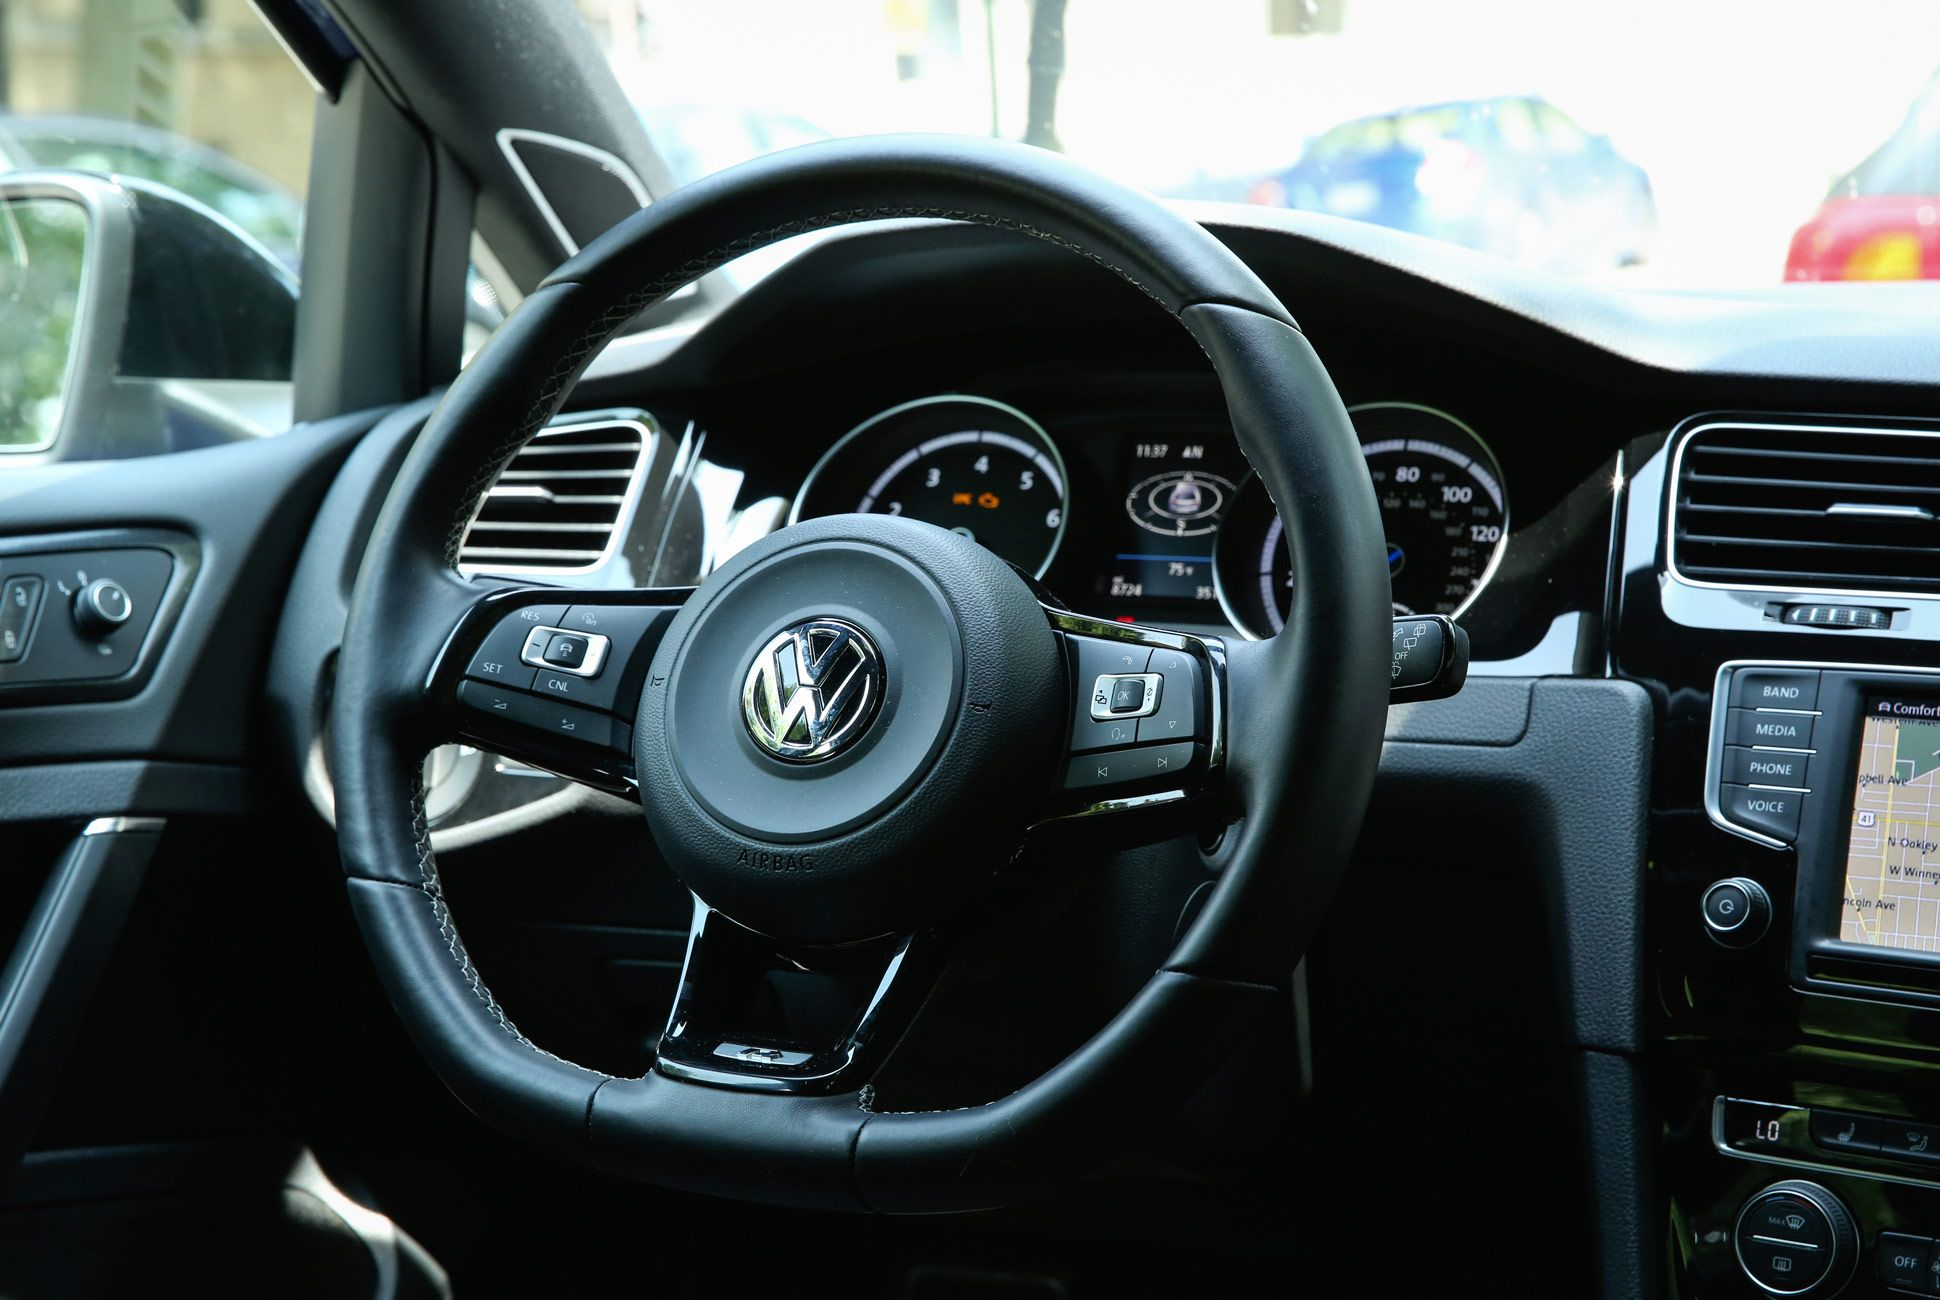 VW-Golf-R-Gear-Patrol-Slide-5